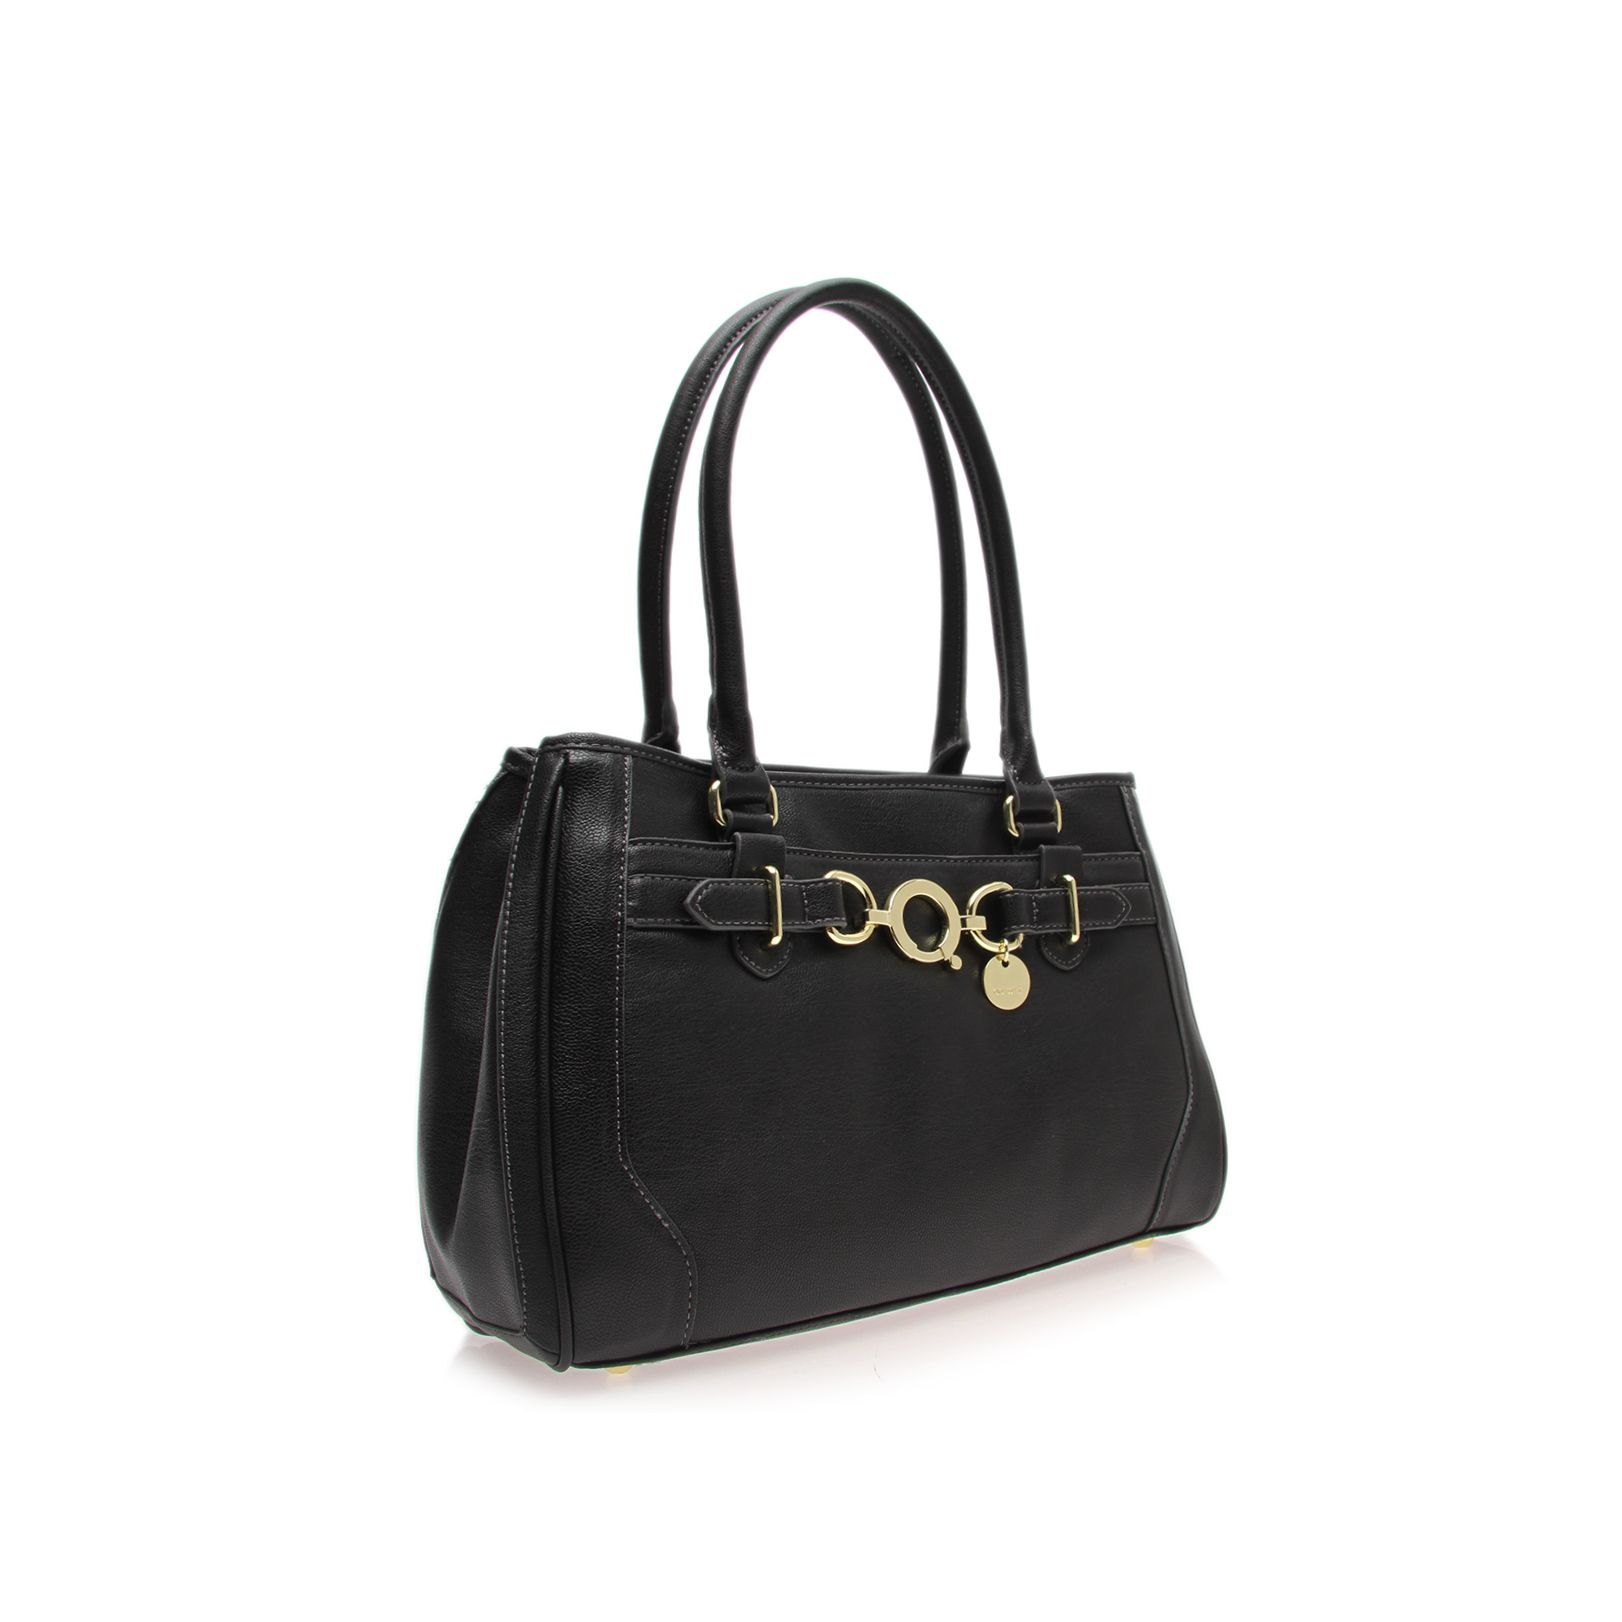 Turnnchic black tote bag